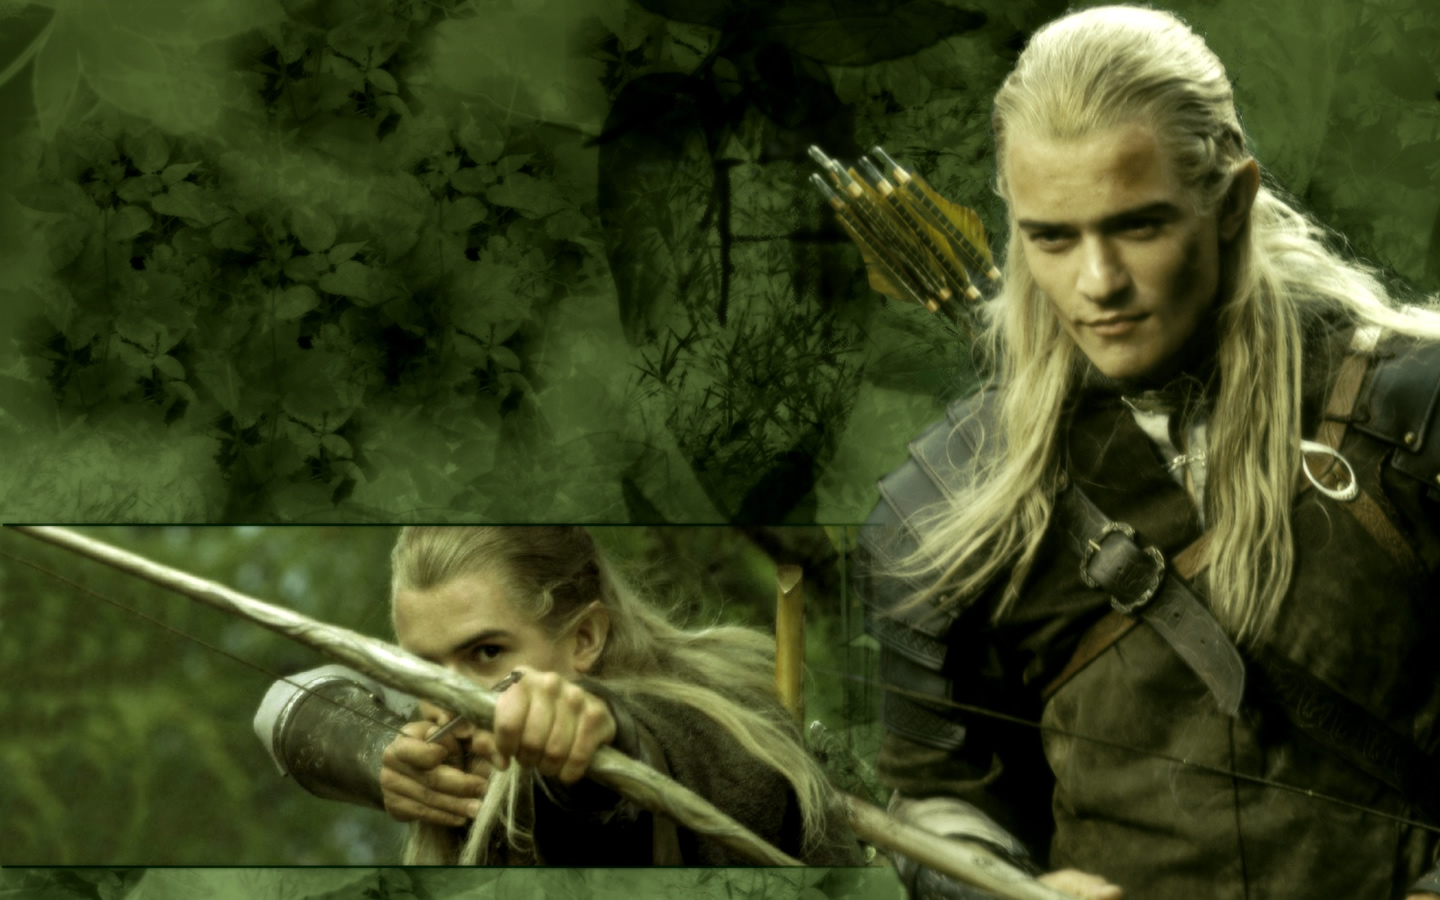 Lord Of The Rings Wallpaper for PC Full HD Pictures 1440x900